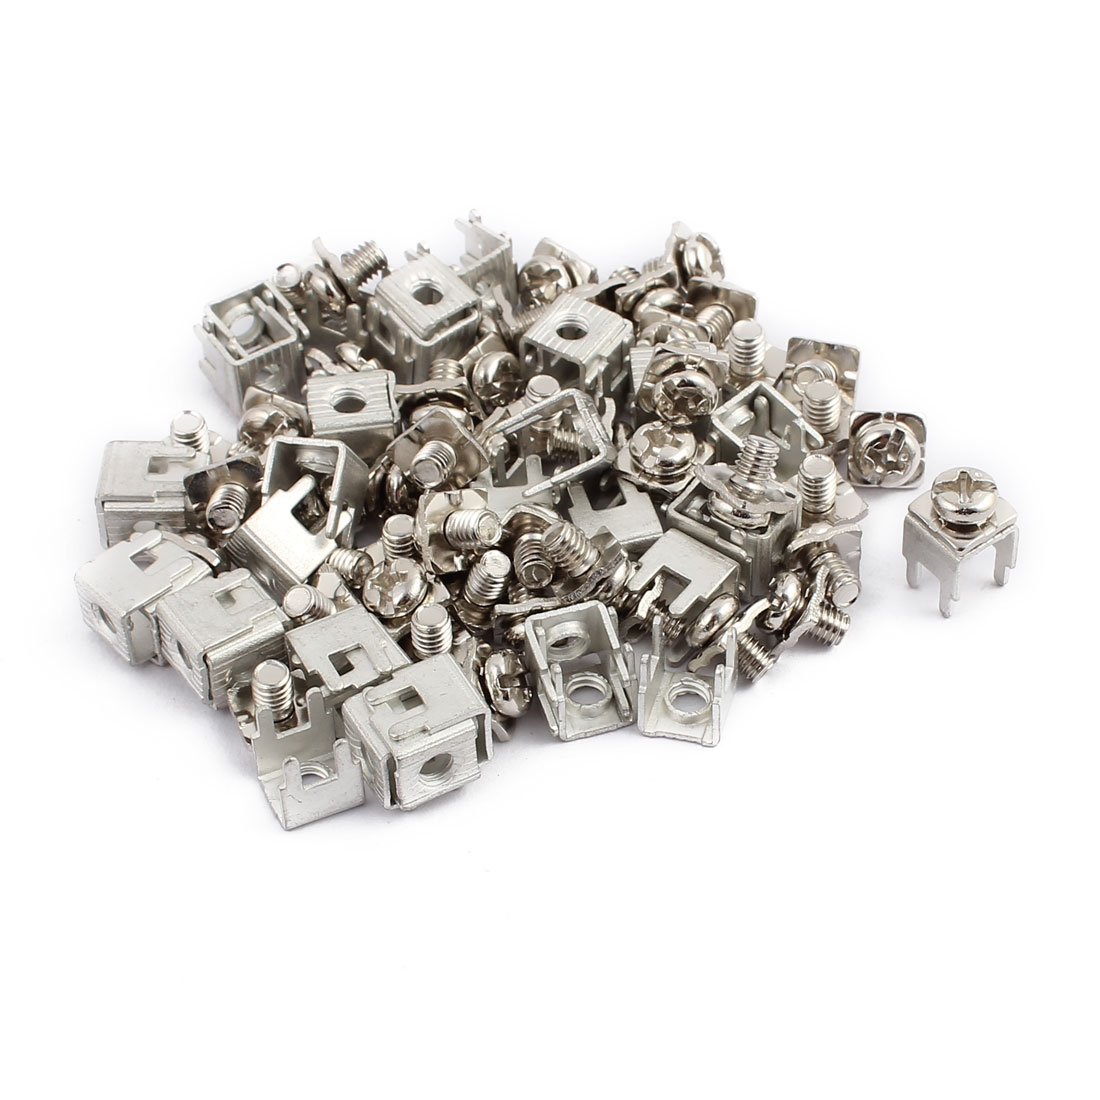 50pcs PCB-11 M4 Thread Snap in Screw Terminal Block w Rect Spacers Screws